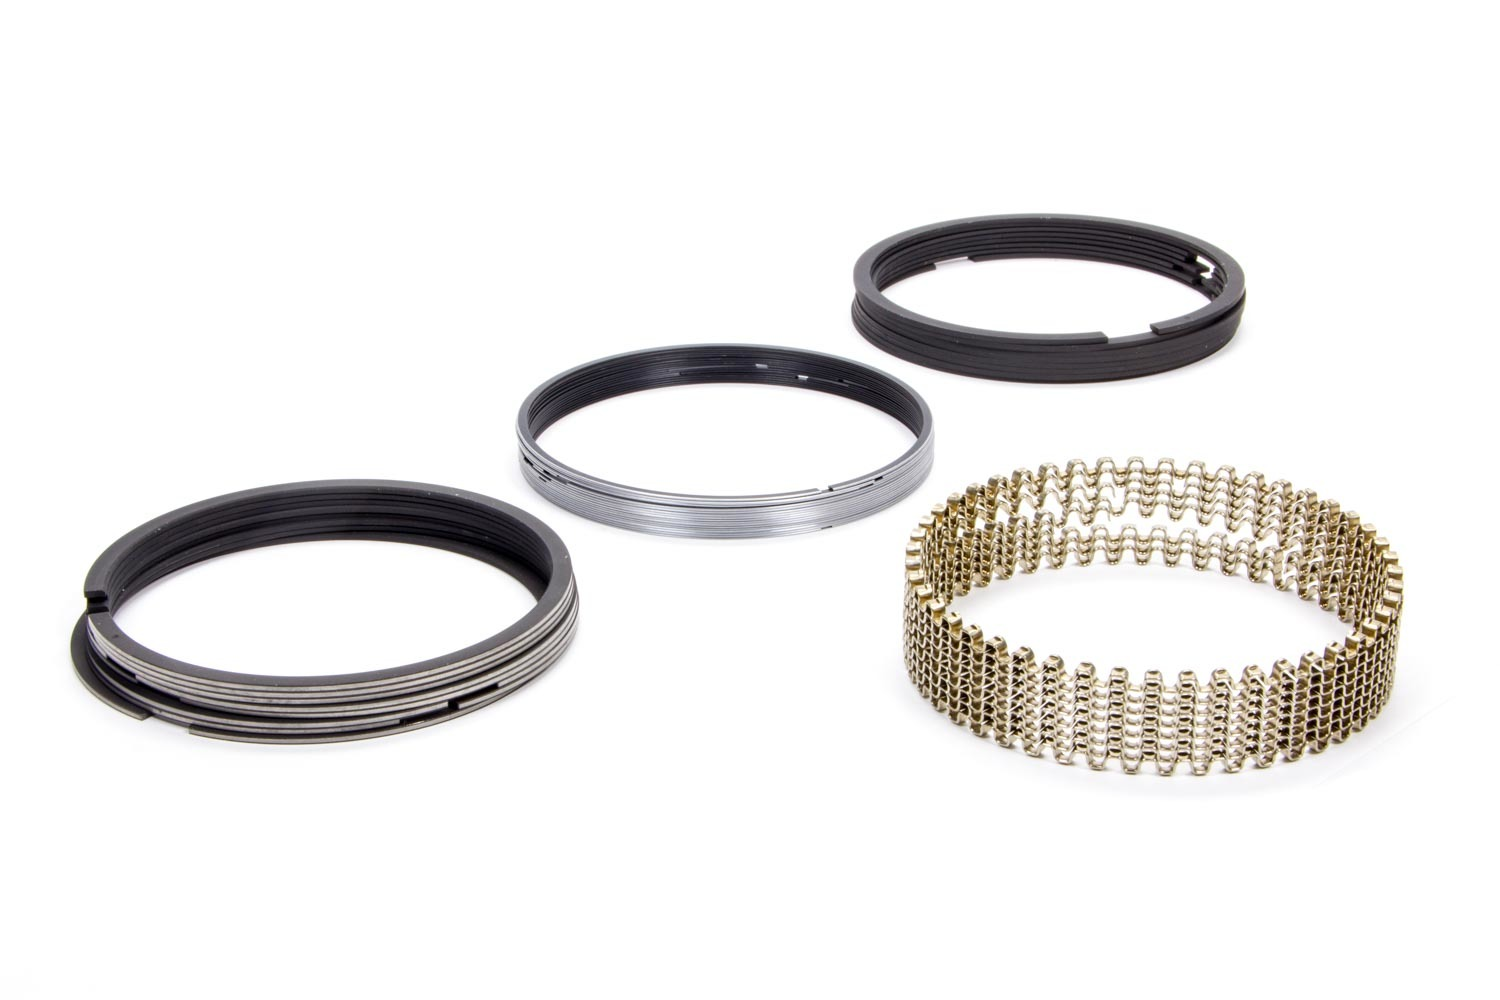 Hastings 2M5508065 Piston Rings, 4.060 in Bore, File Fit, 5/64 x 5/64 x 3/16 in Thick, Standard Tension, Moly, 8 Cylinder, Kit